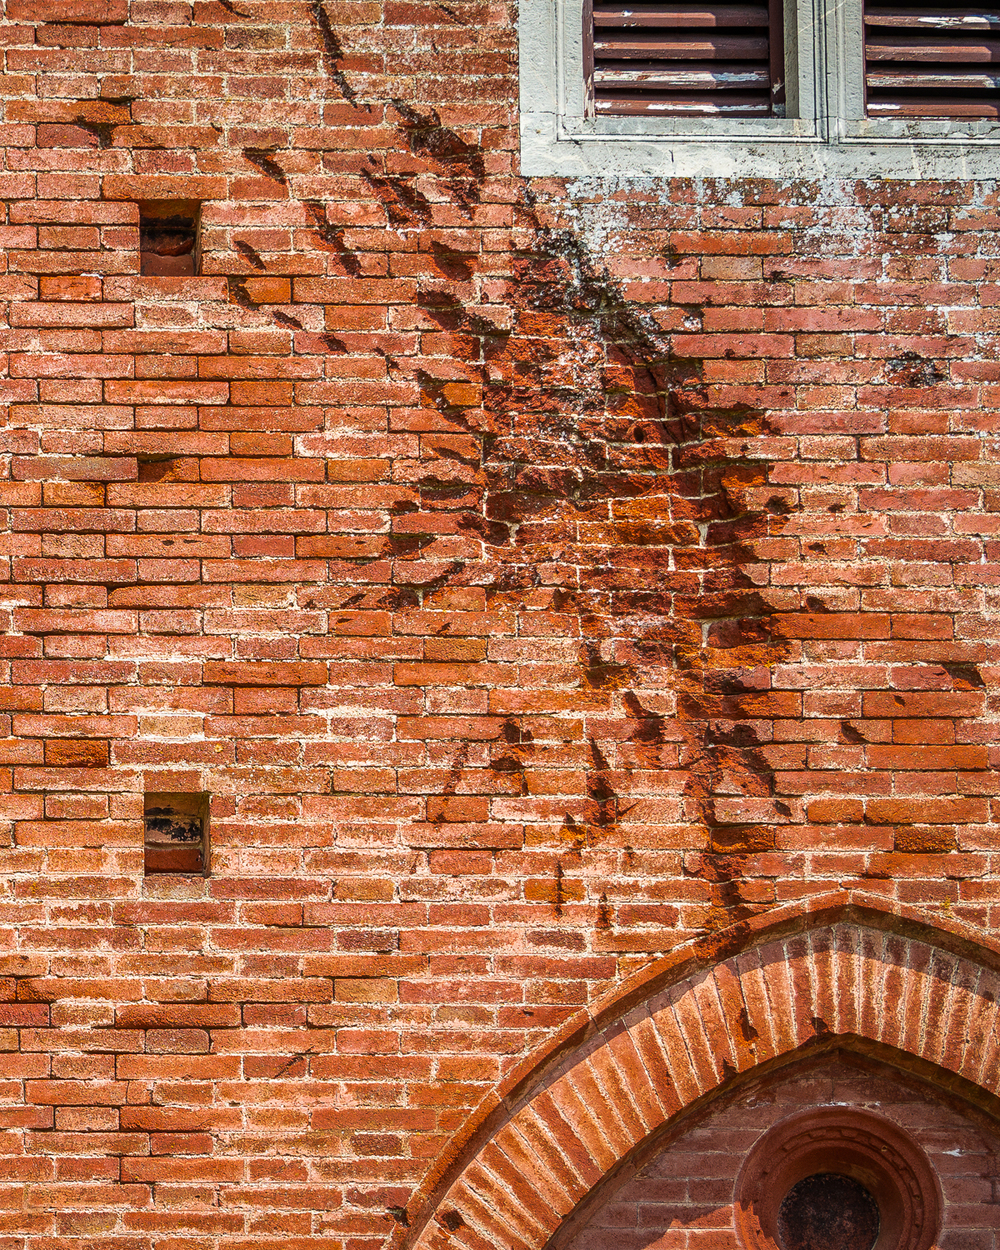 Battle-scarred brickwork of Castello Brolio